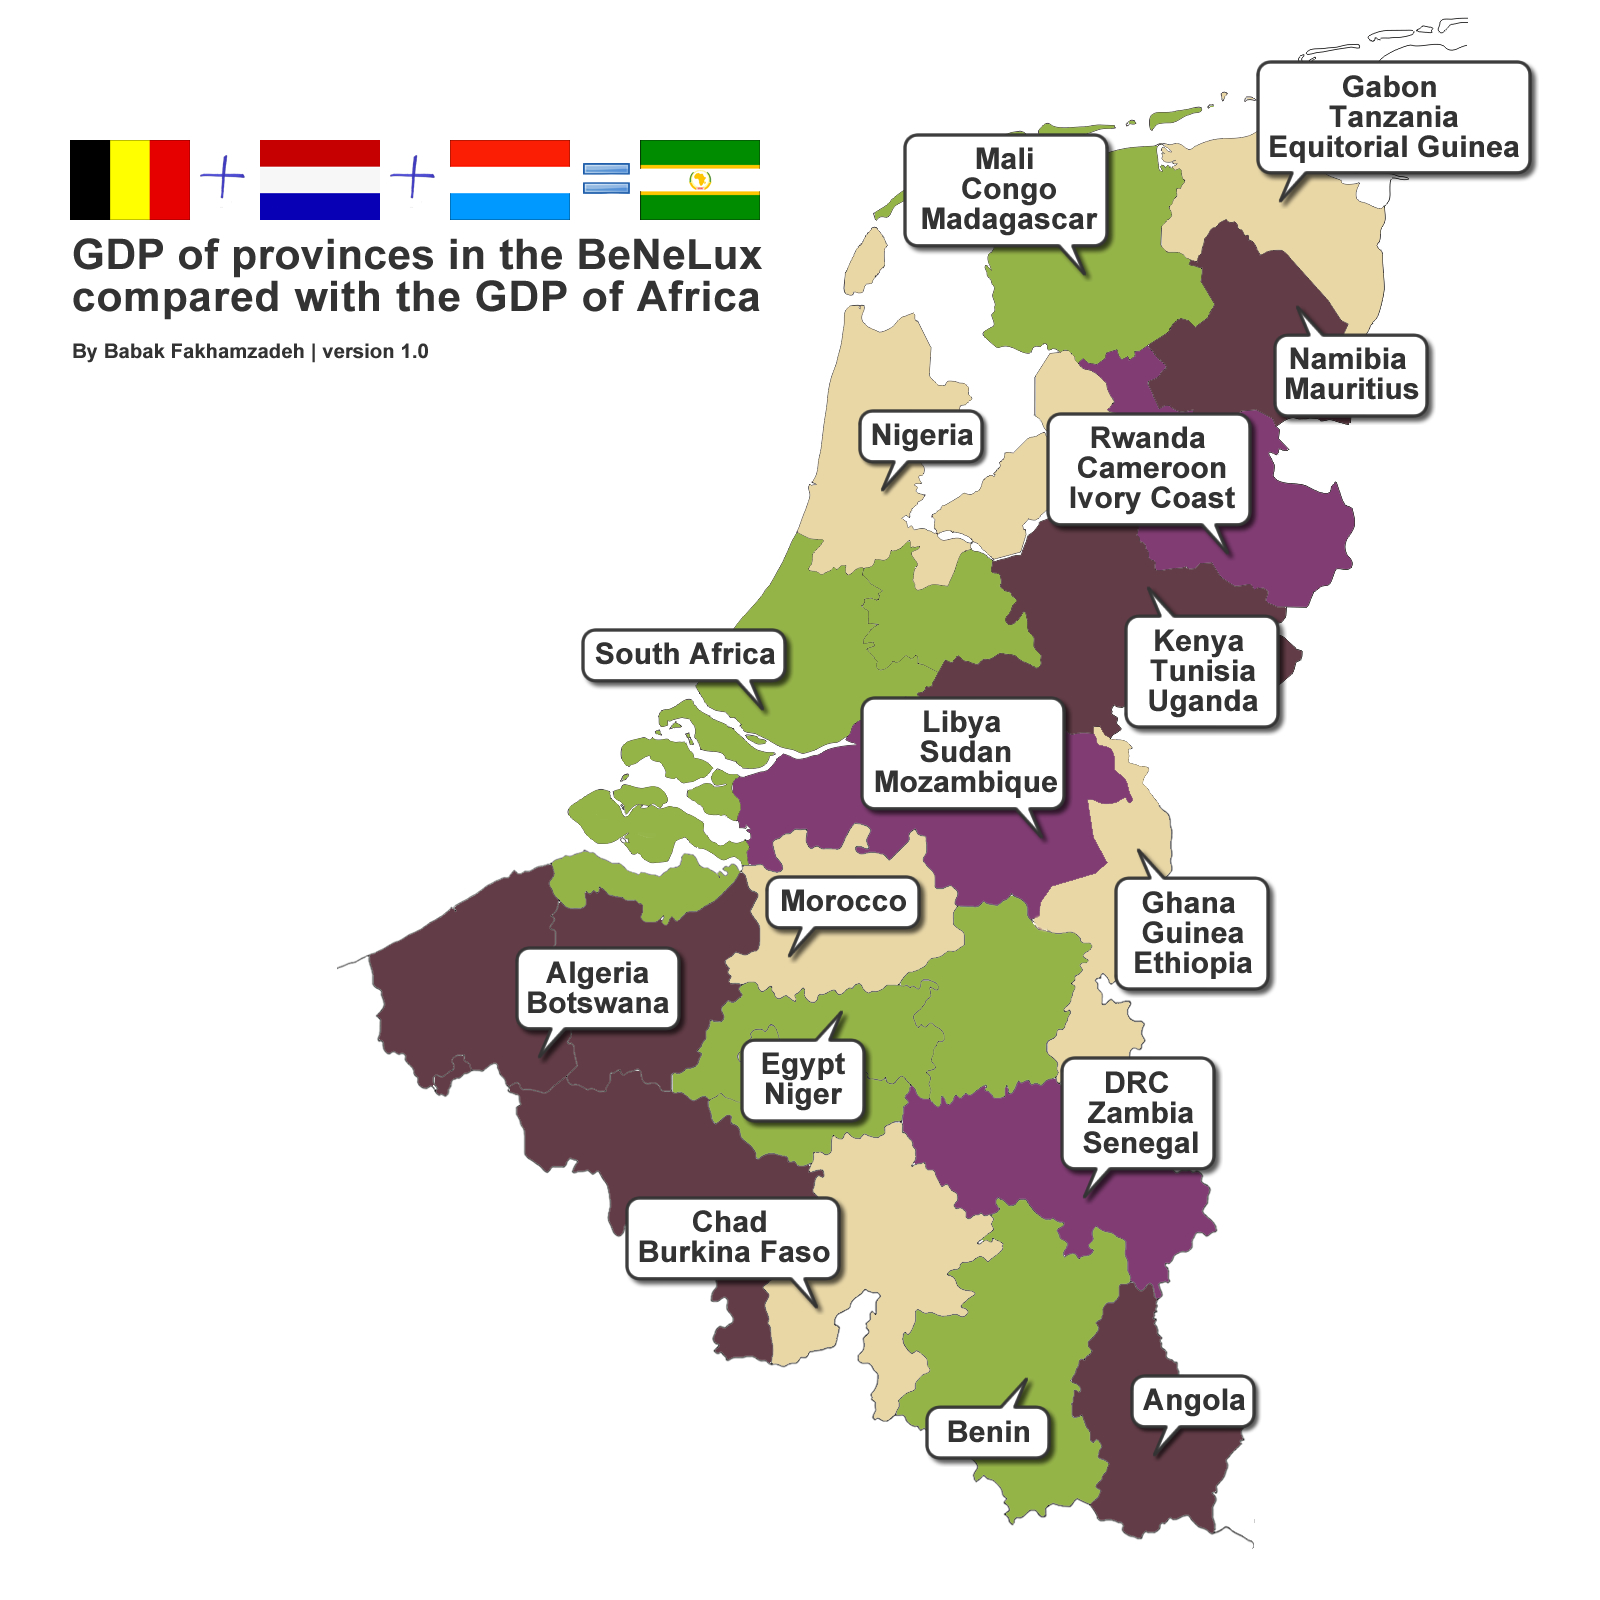 Comparing the GDP of the BeNeLux with that of Africa